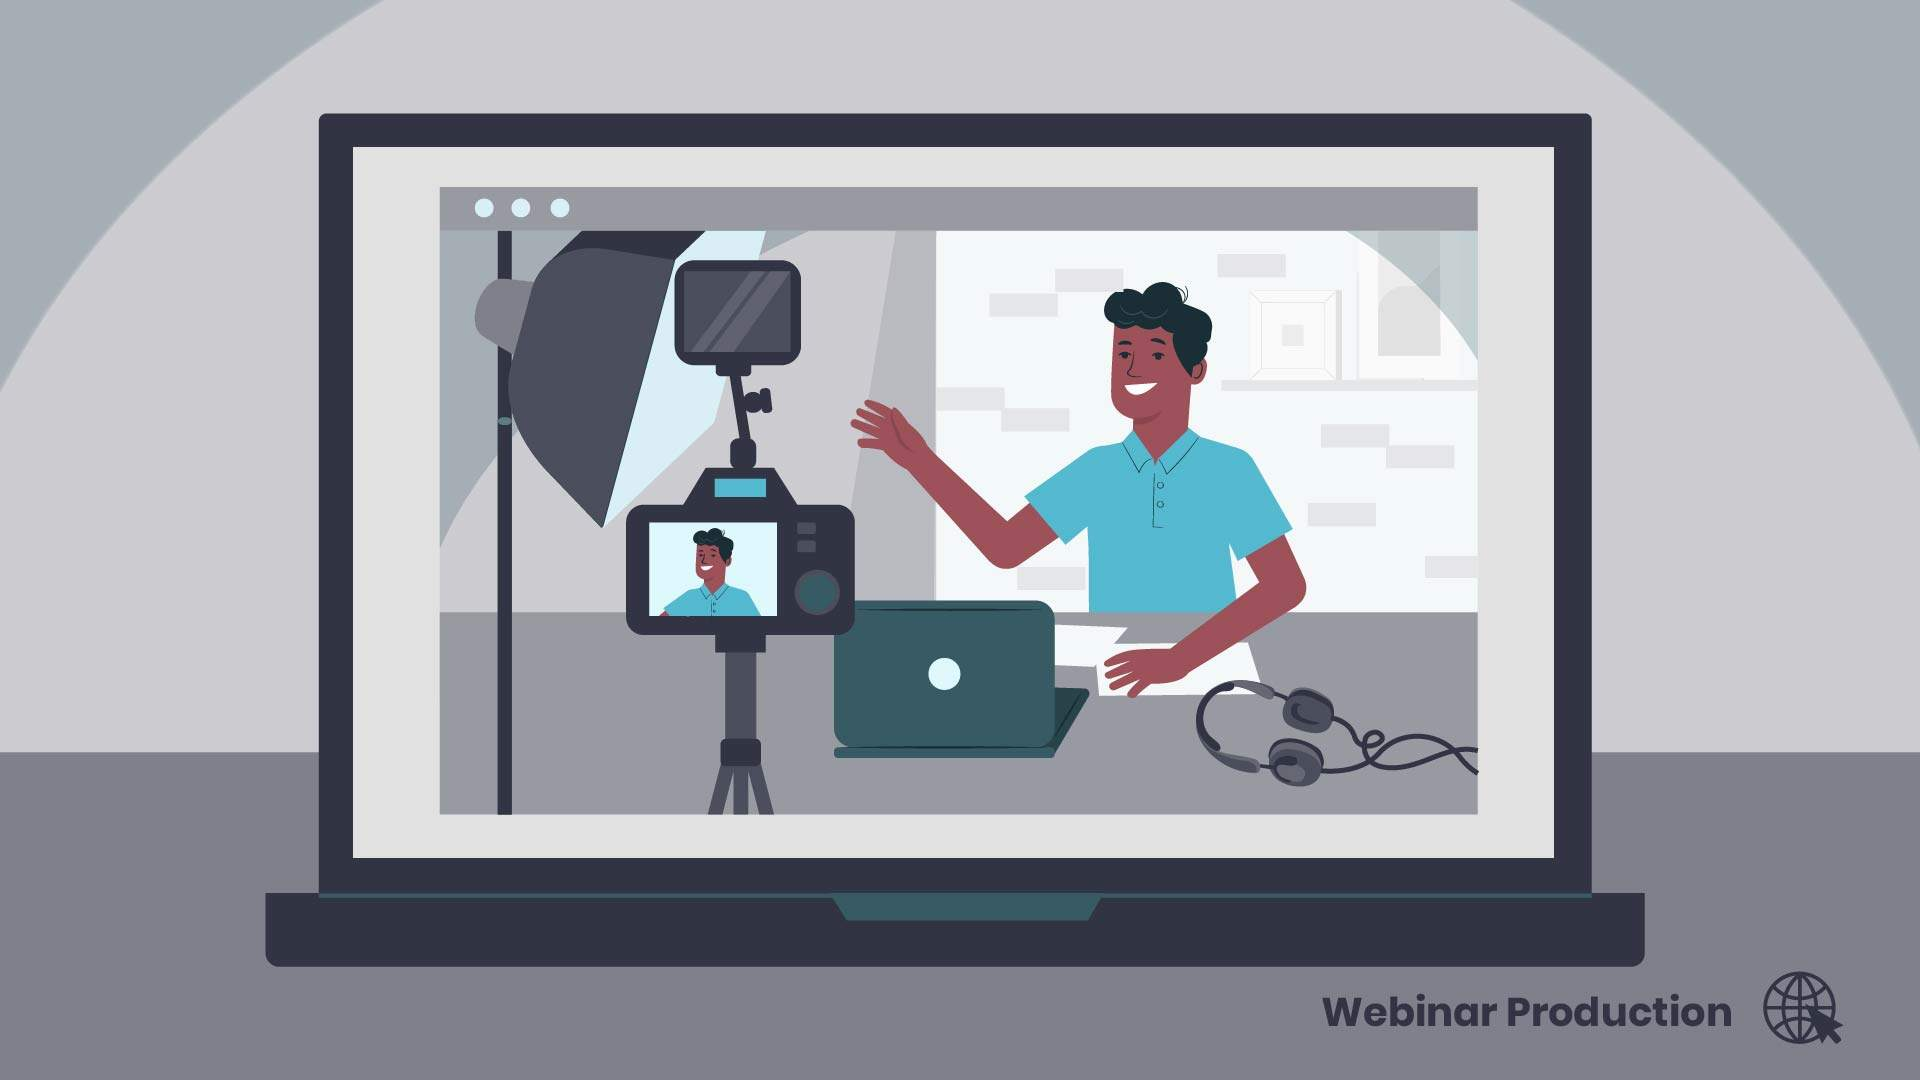 How to broadcast live - animation